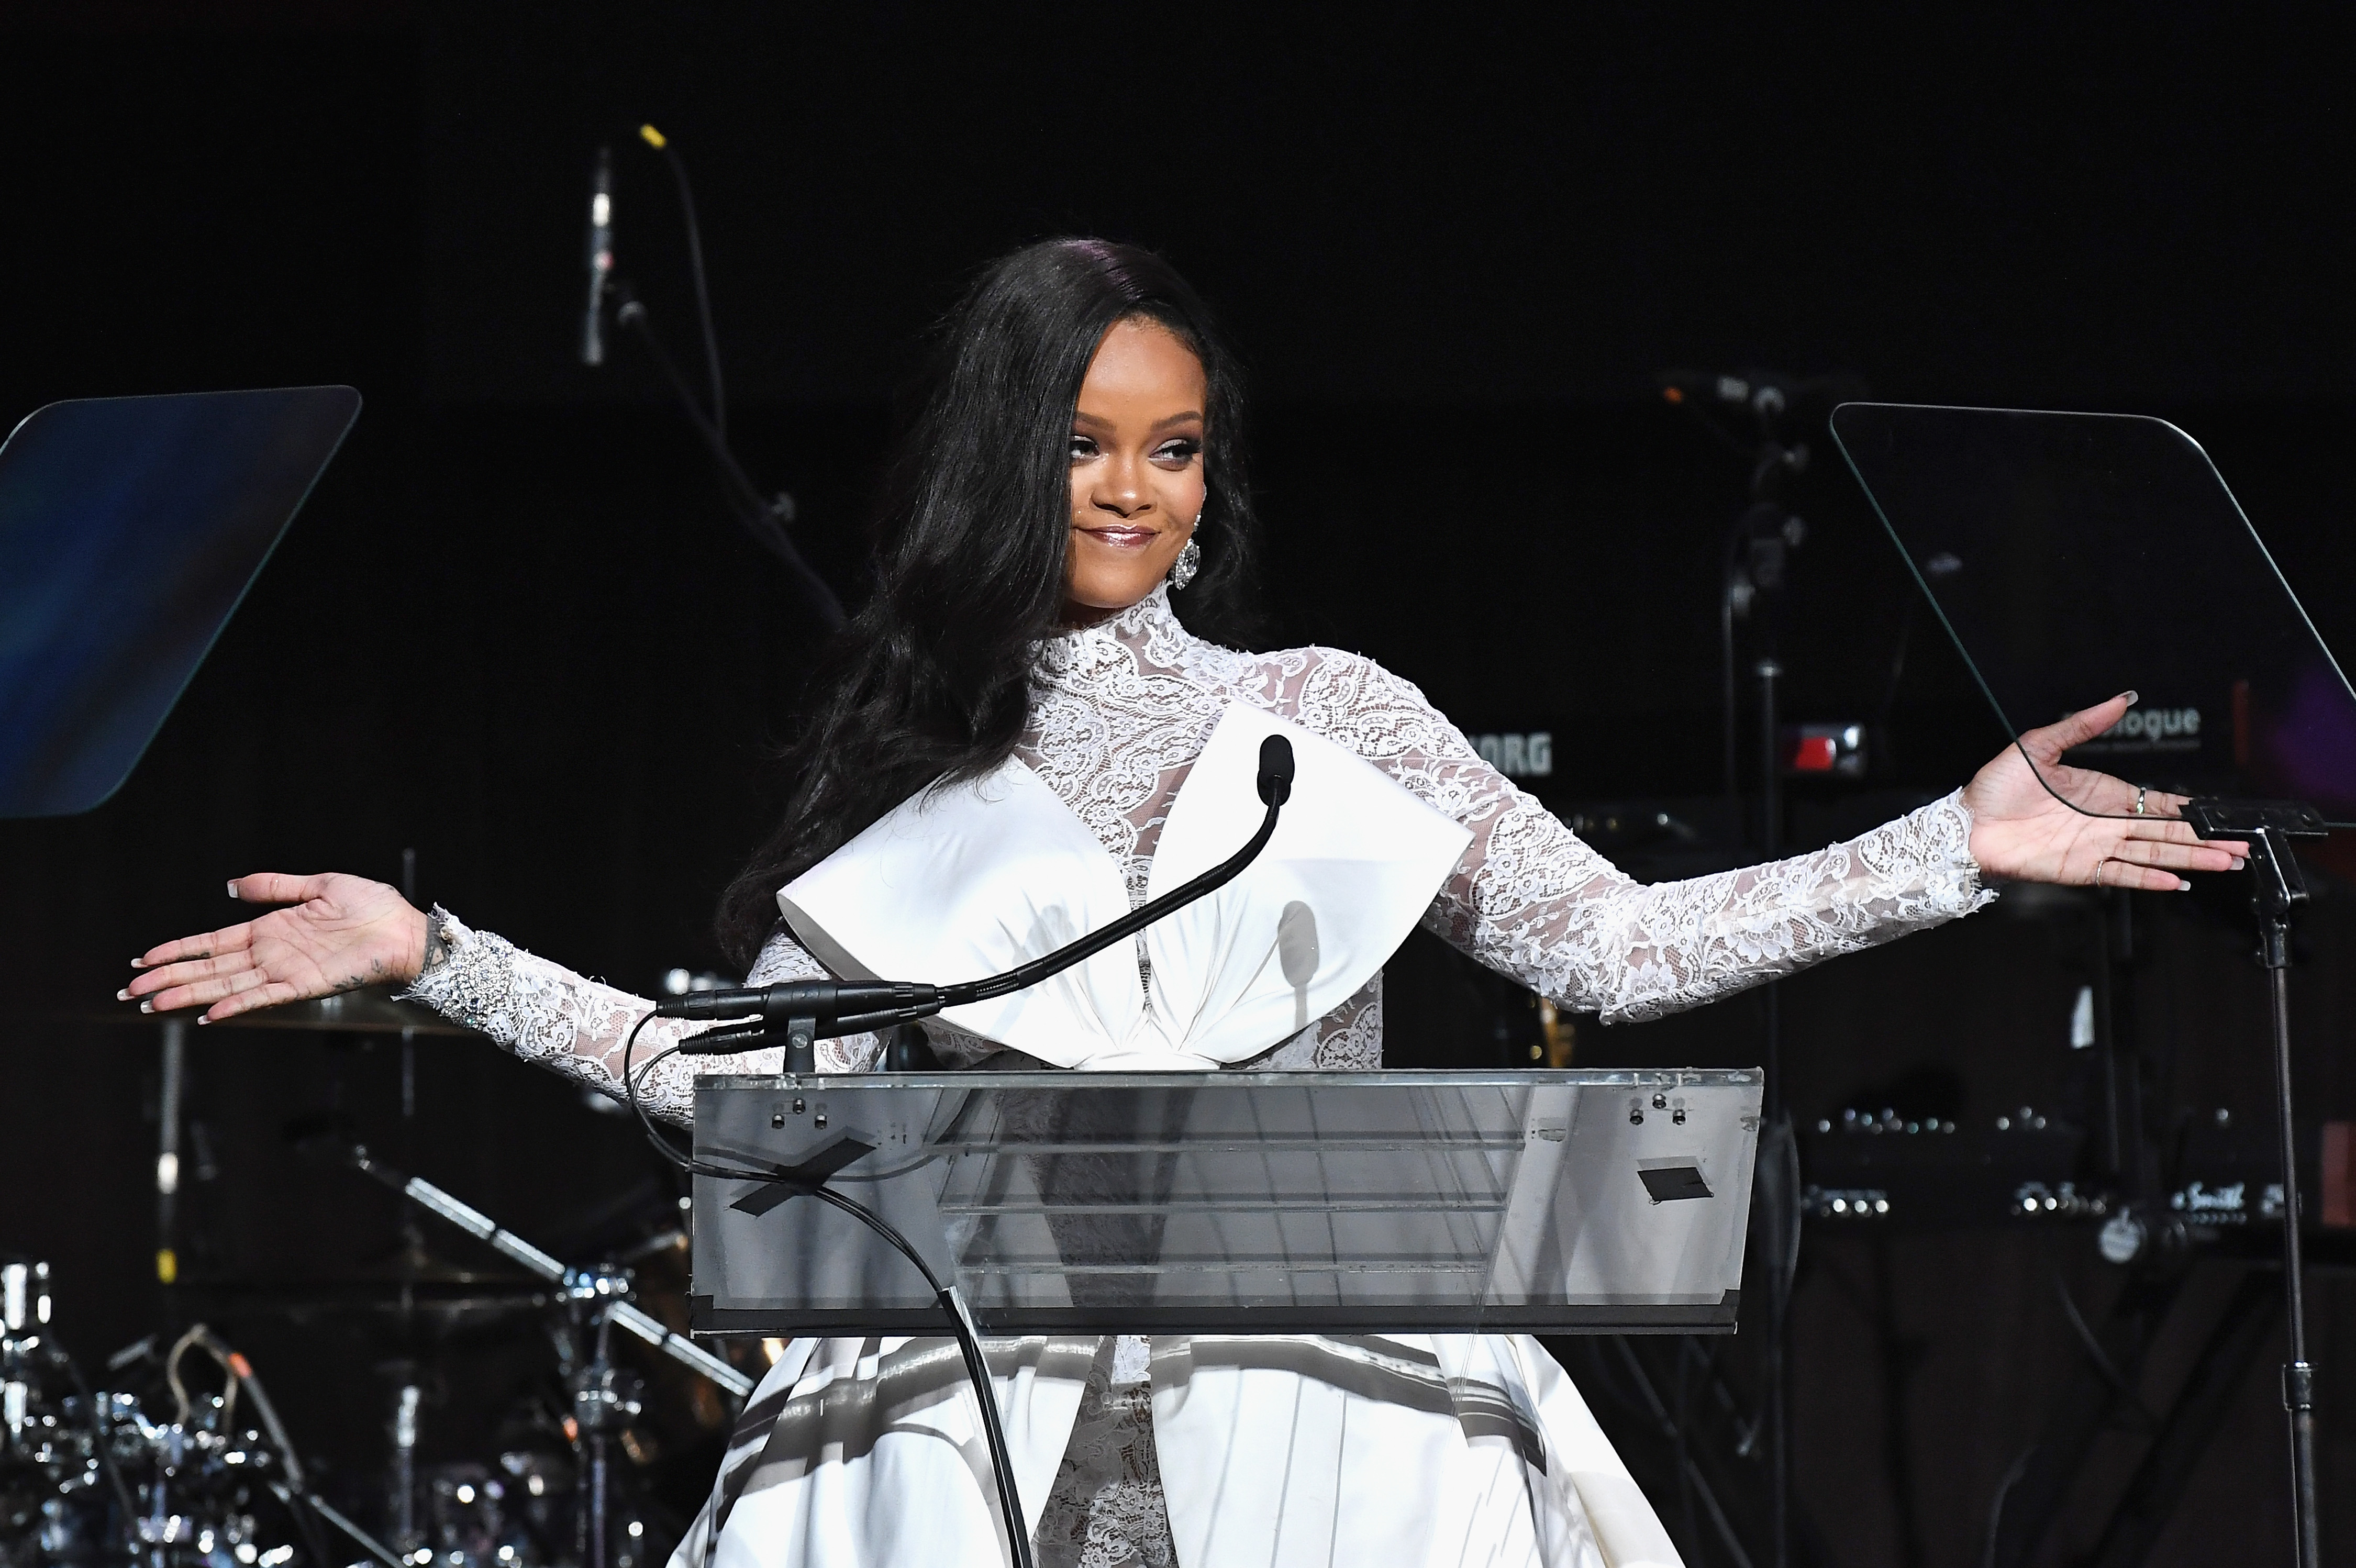 NEW YORK, NY - SEPTEMBER 13:  Rihanna speaks onstage during Rihanna's 4th Annual Diamond Ball benefitting The Clara Lionel Foundation at Cipriani Wall Street on September 13, 2018 in New York City.  (Photo by Dimitrios Kambouris/Getty Images for Diamond Ball)